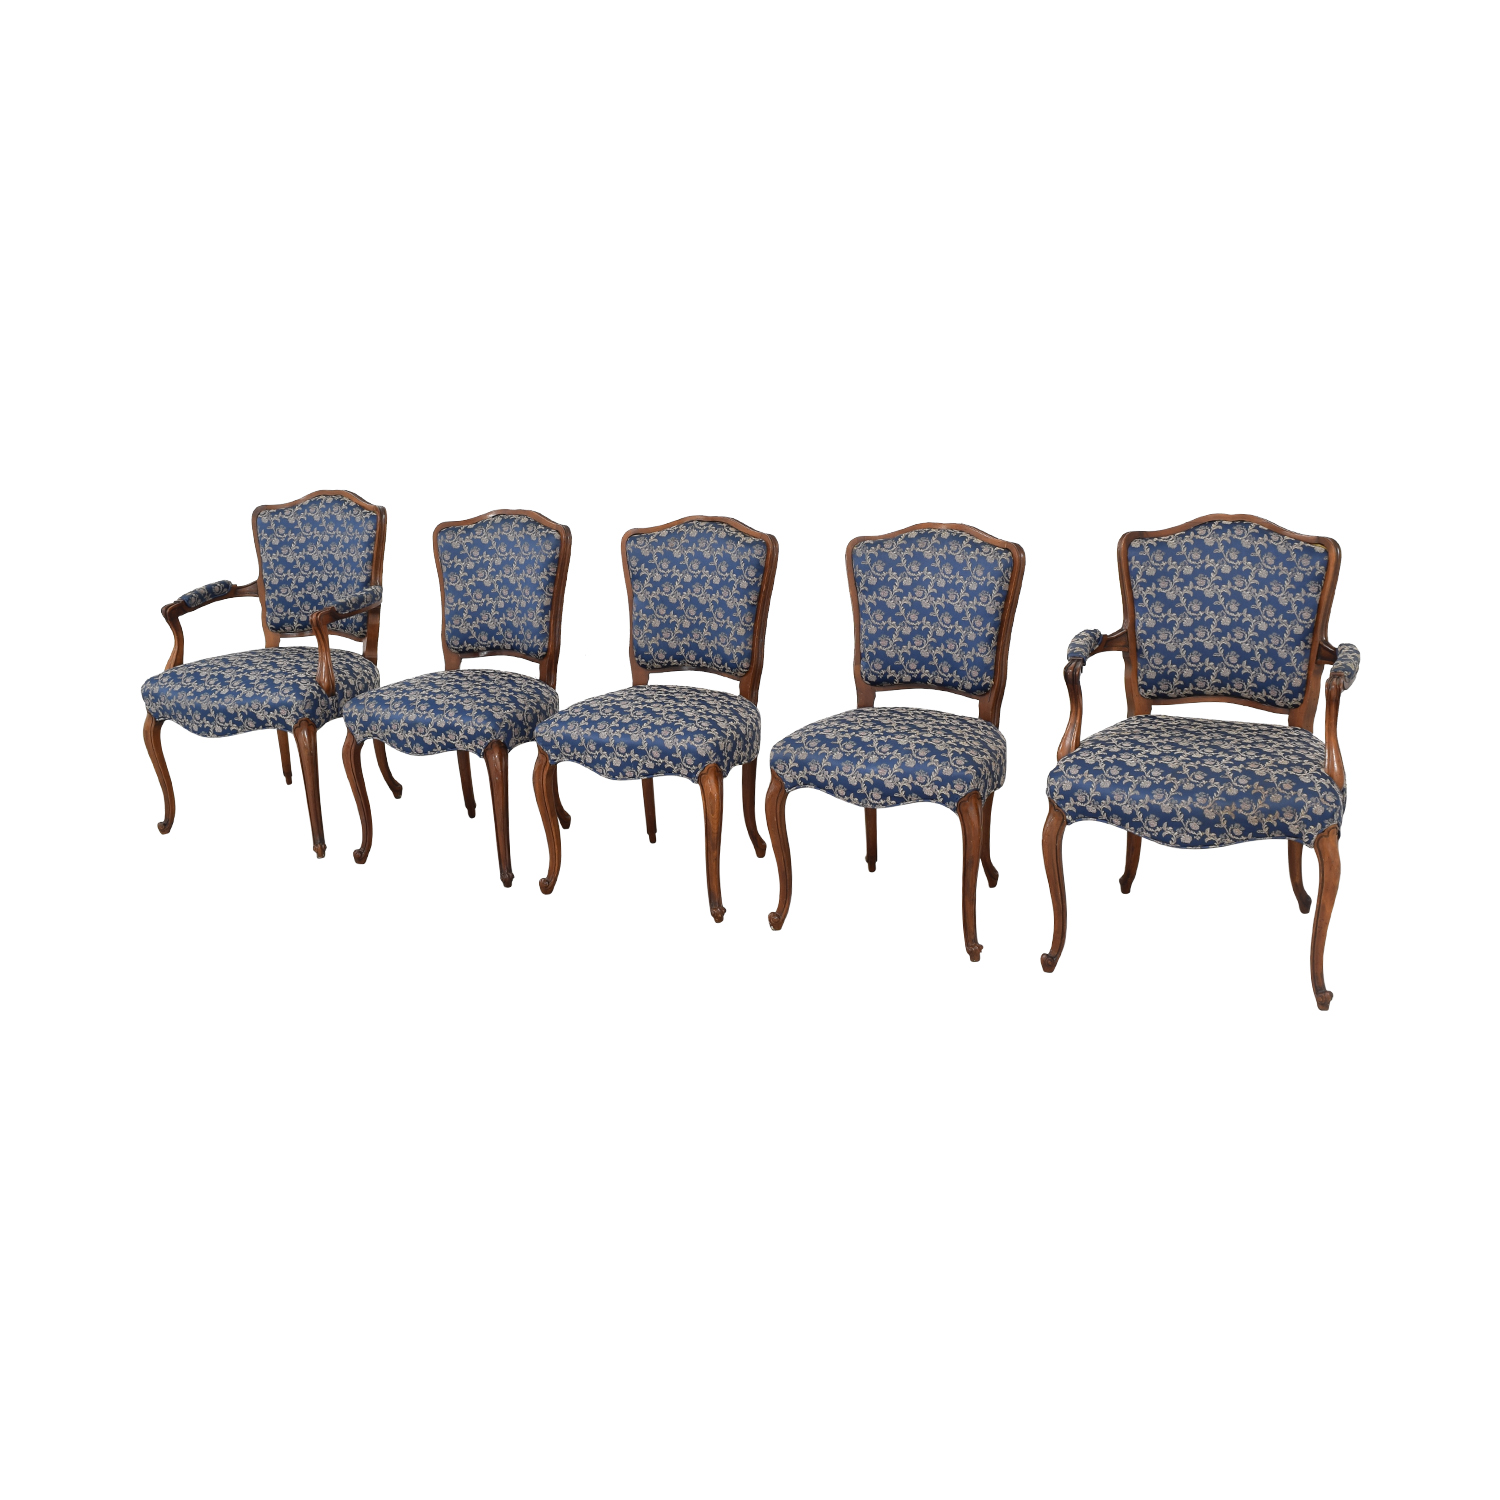 French Provincial Dining Chairs nyc